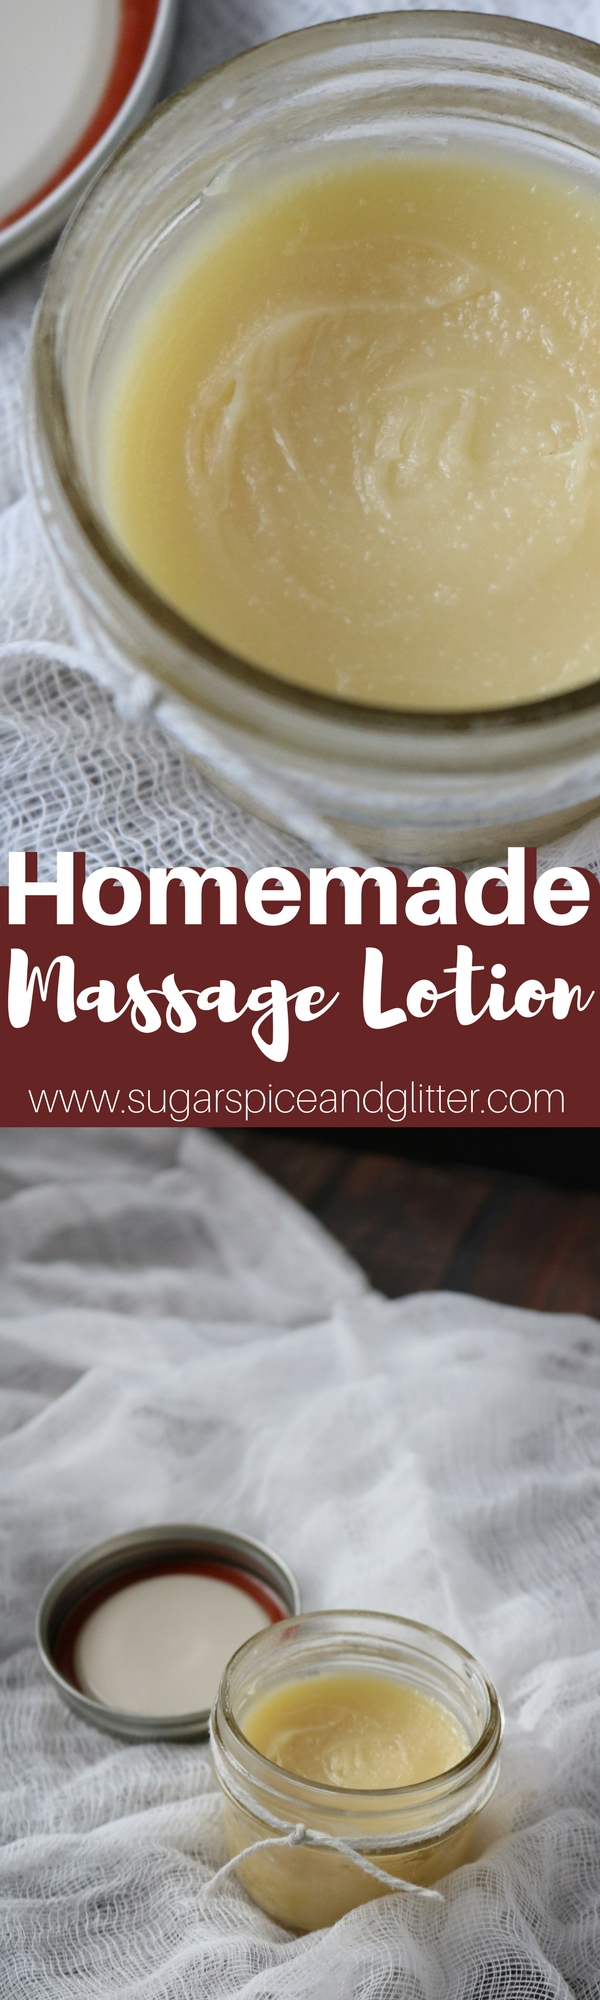 Homemade Massage Lotion perfect for bedtime back rubs or a relaxing foot massage. Massage oil made with essential oils, beeswax, shea butter and coconut oil